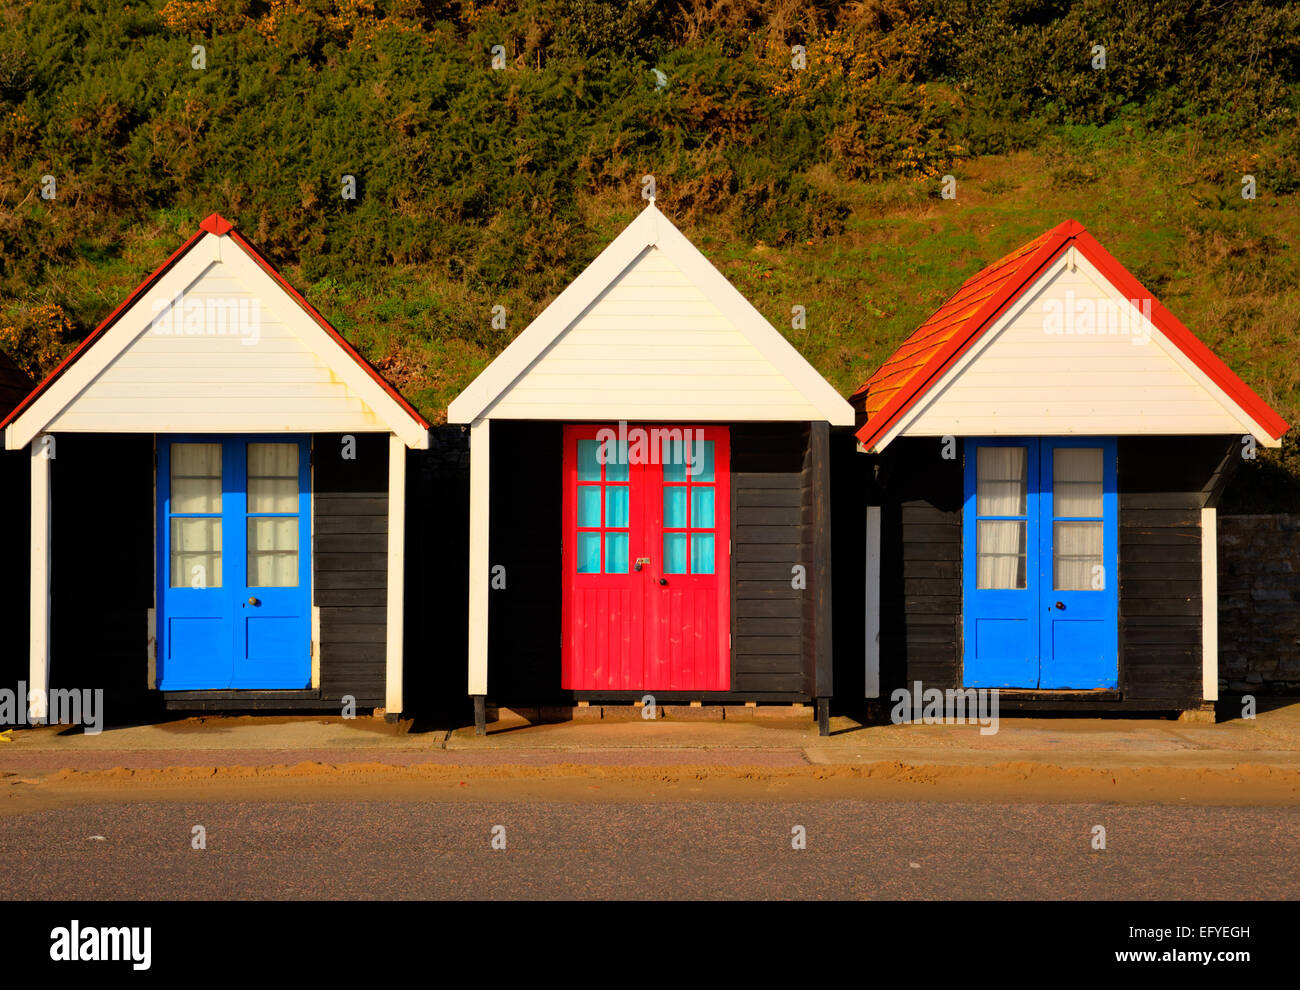 Three colourful beach huts with blue and red doors in a row traditional English structure and shelter found at the - Stock Image